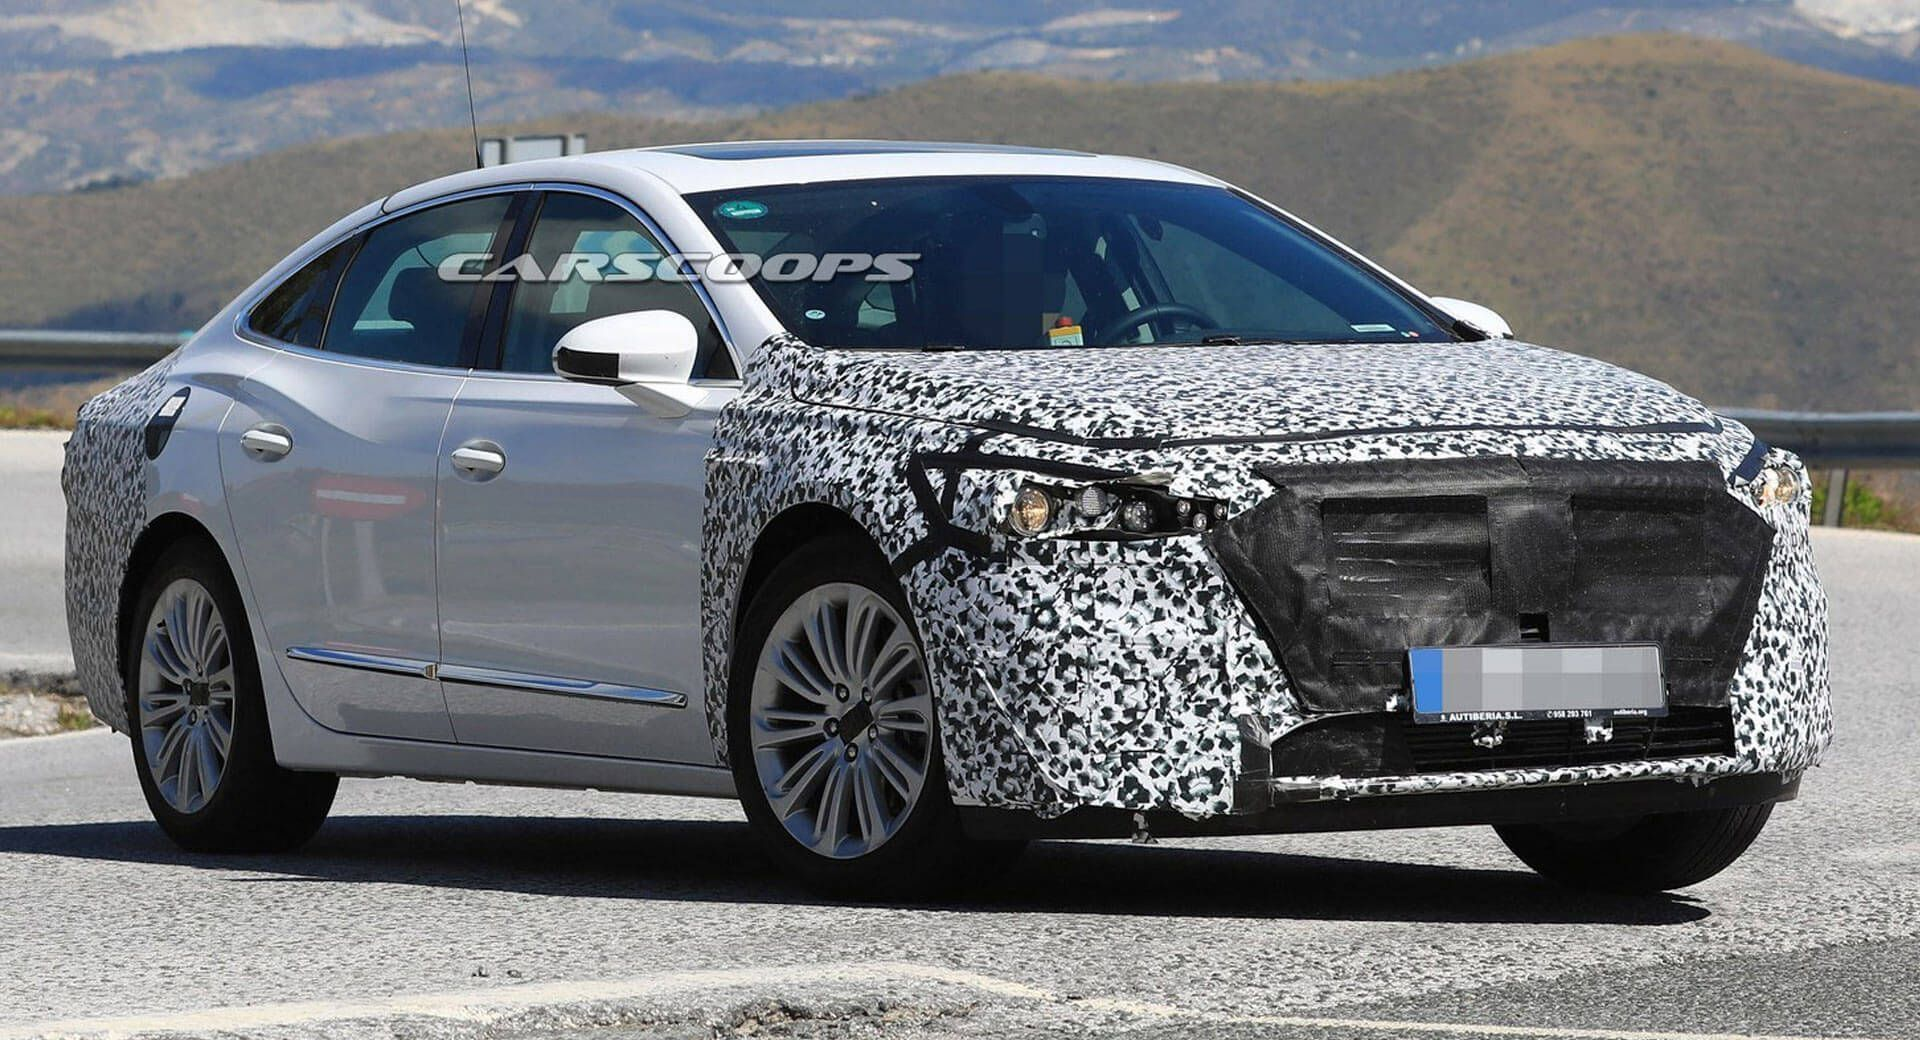 2020 Buick Lacrosse Shows A Handsome New Face But Not For The U S Buick Lacrosse Buick Latest Cars